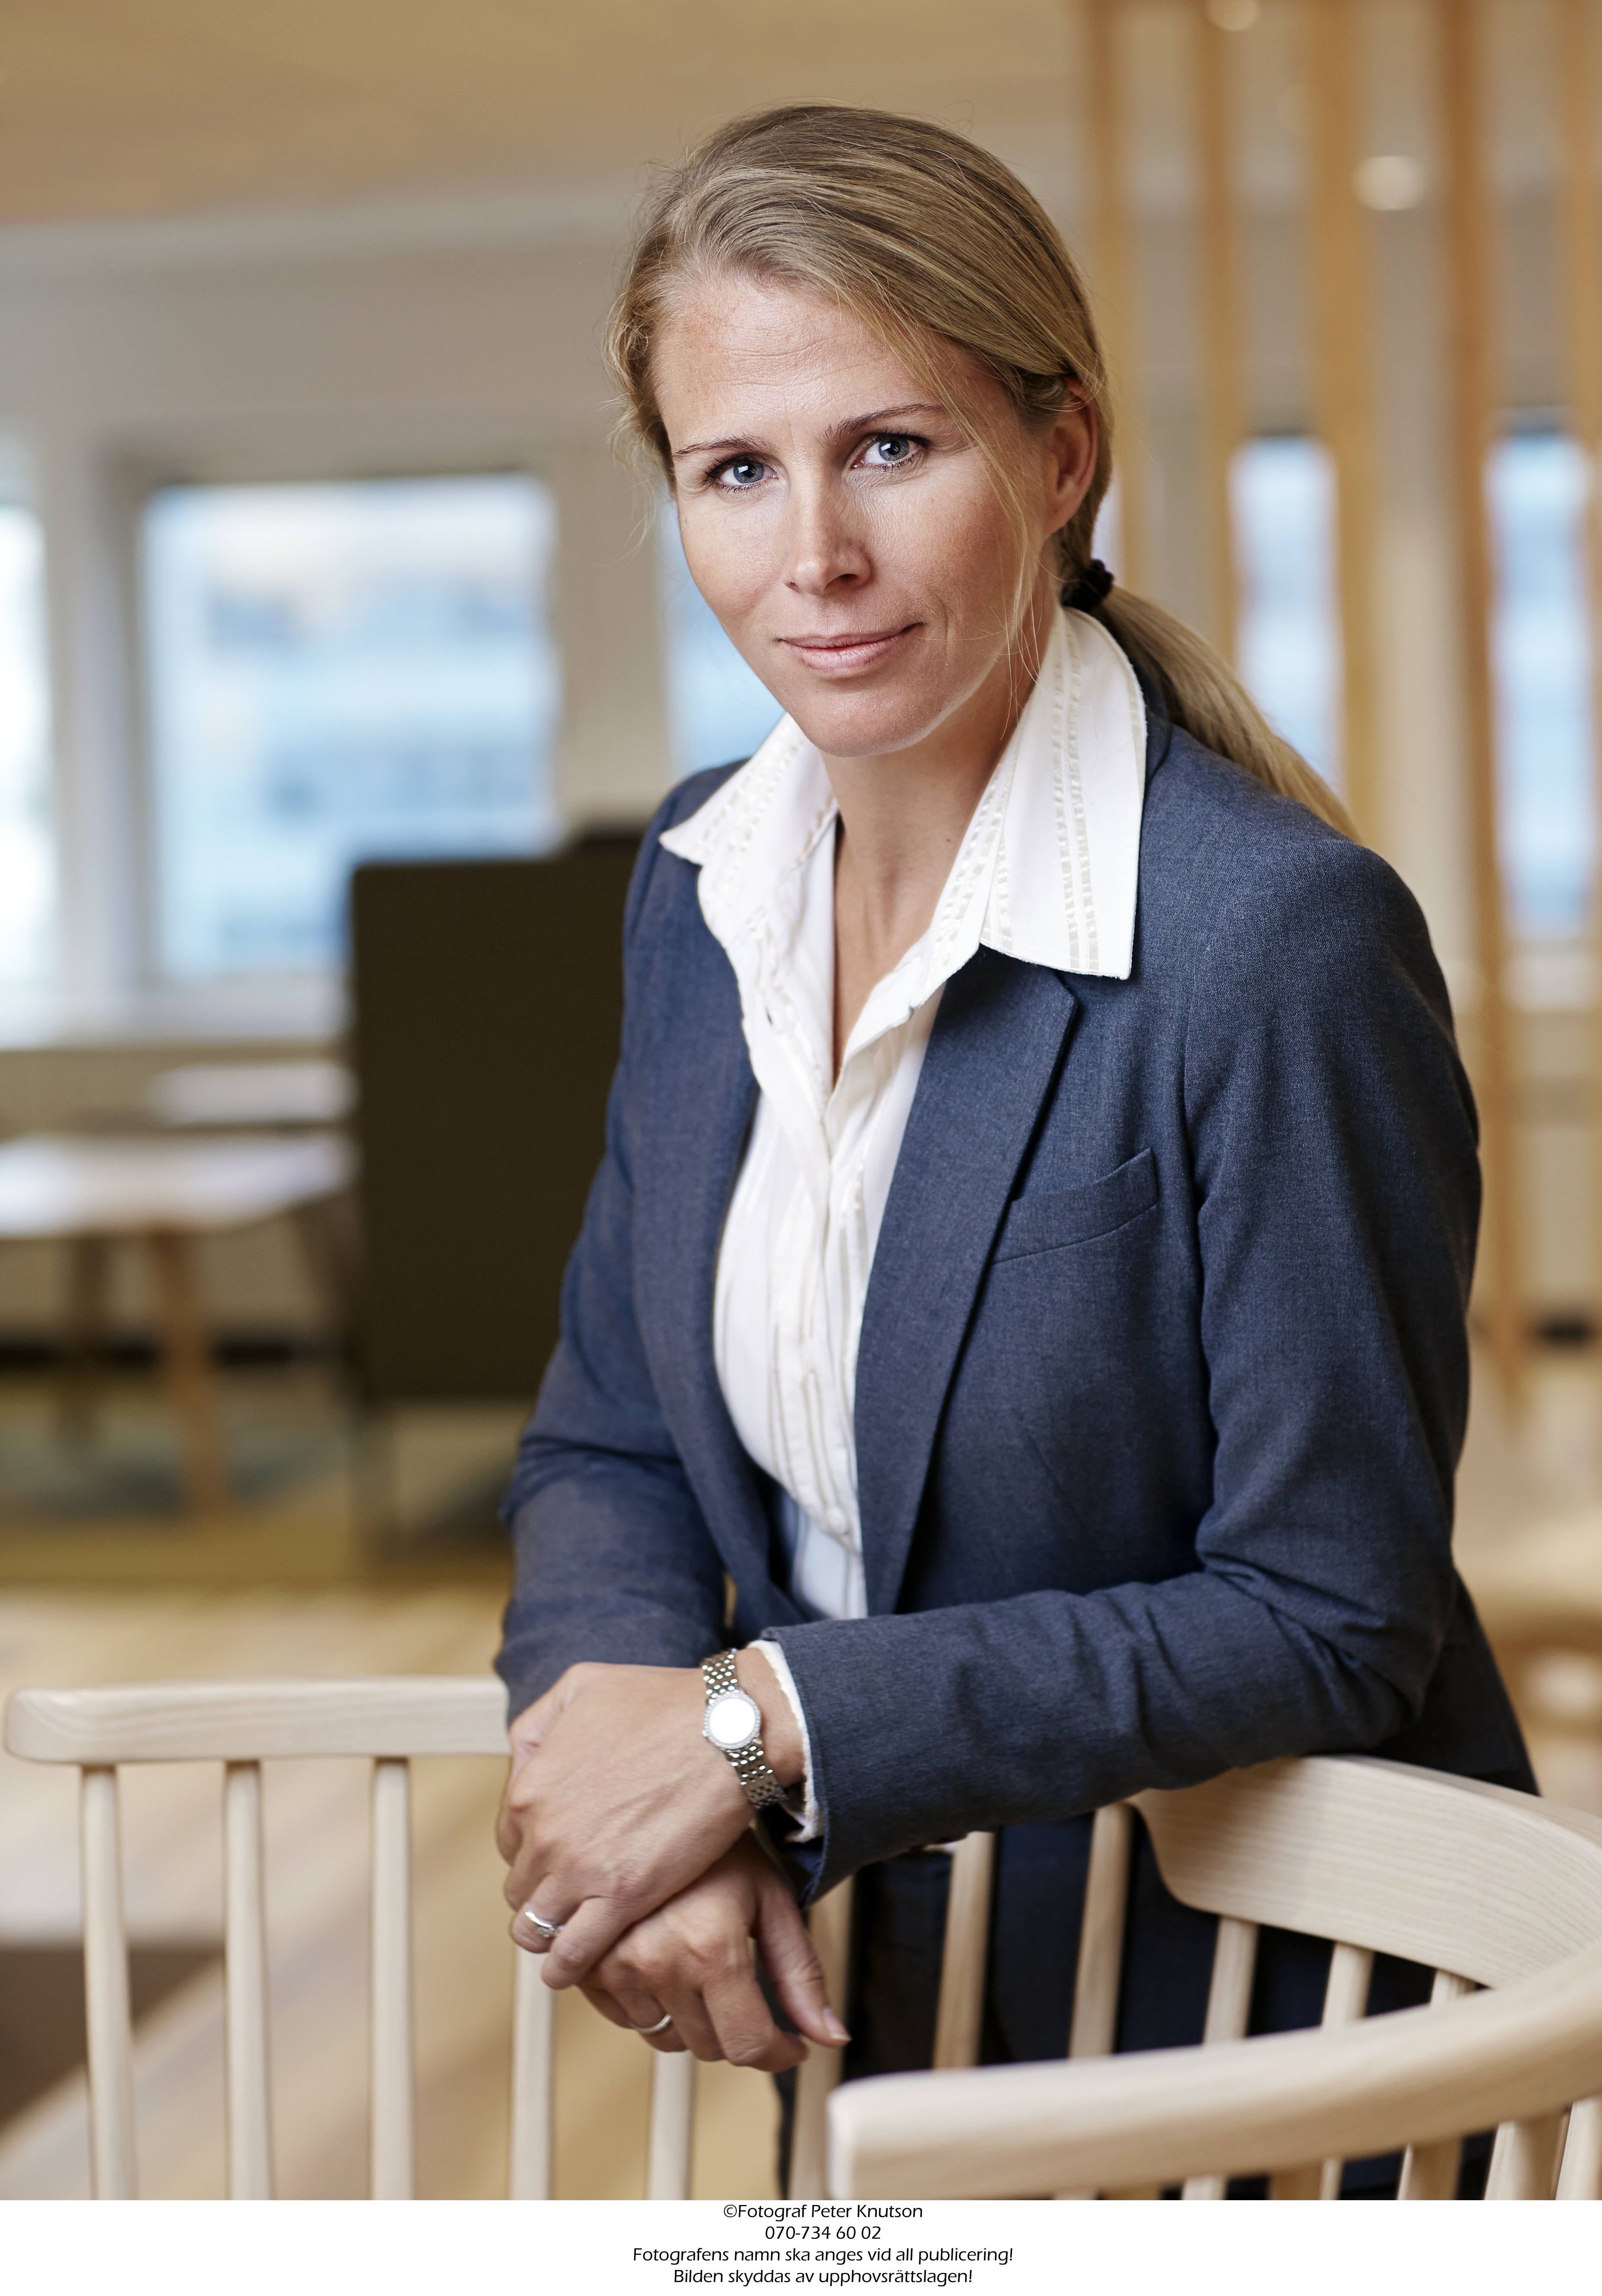 Malin Bendz, the new Executive Vice President of human resources and a member of the Leadership Team Group of Stora Enso.